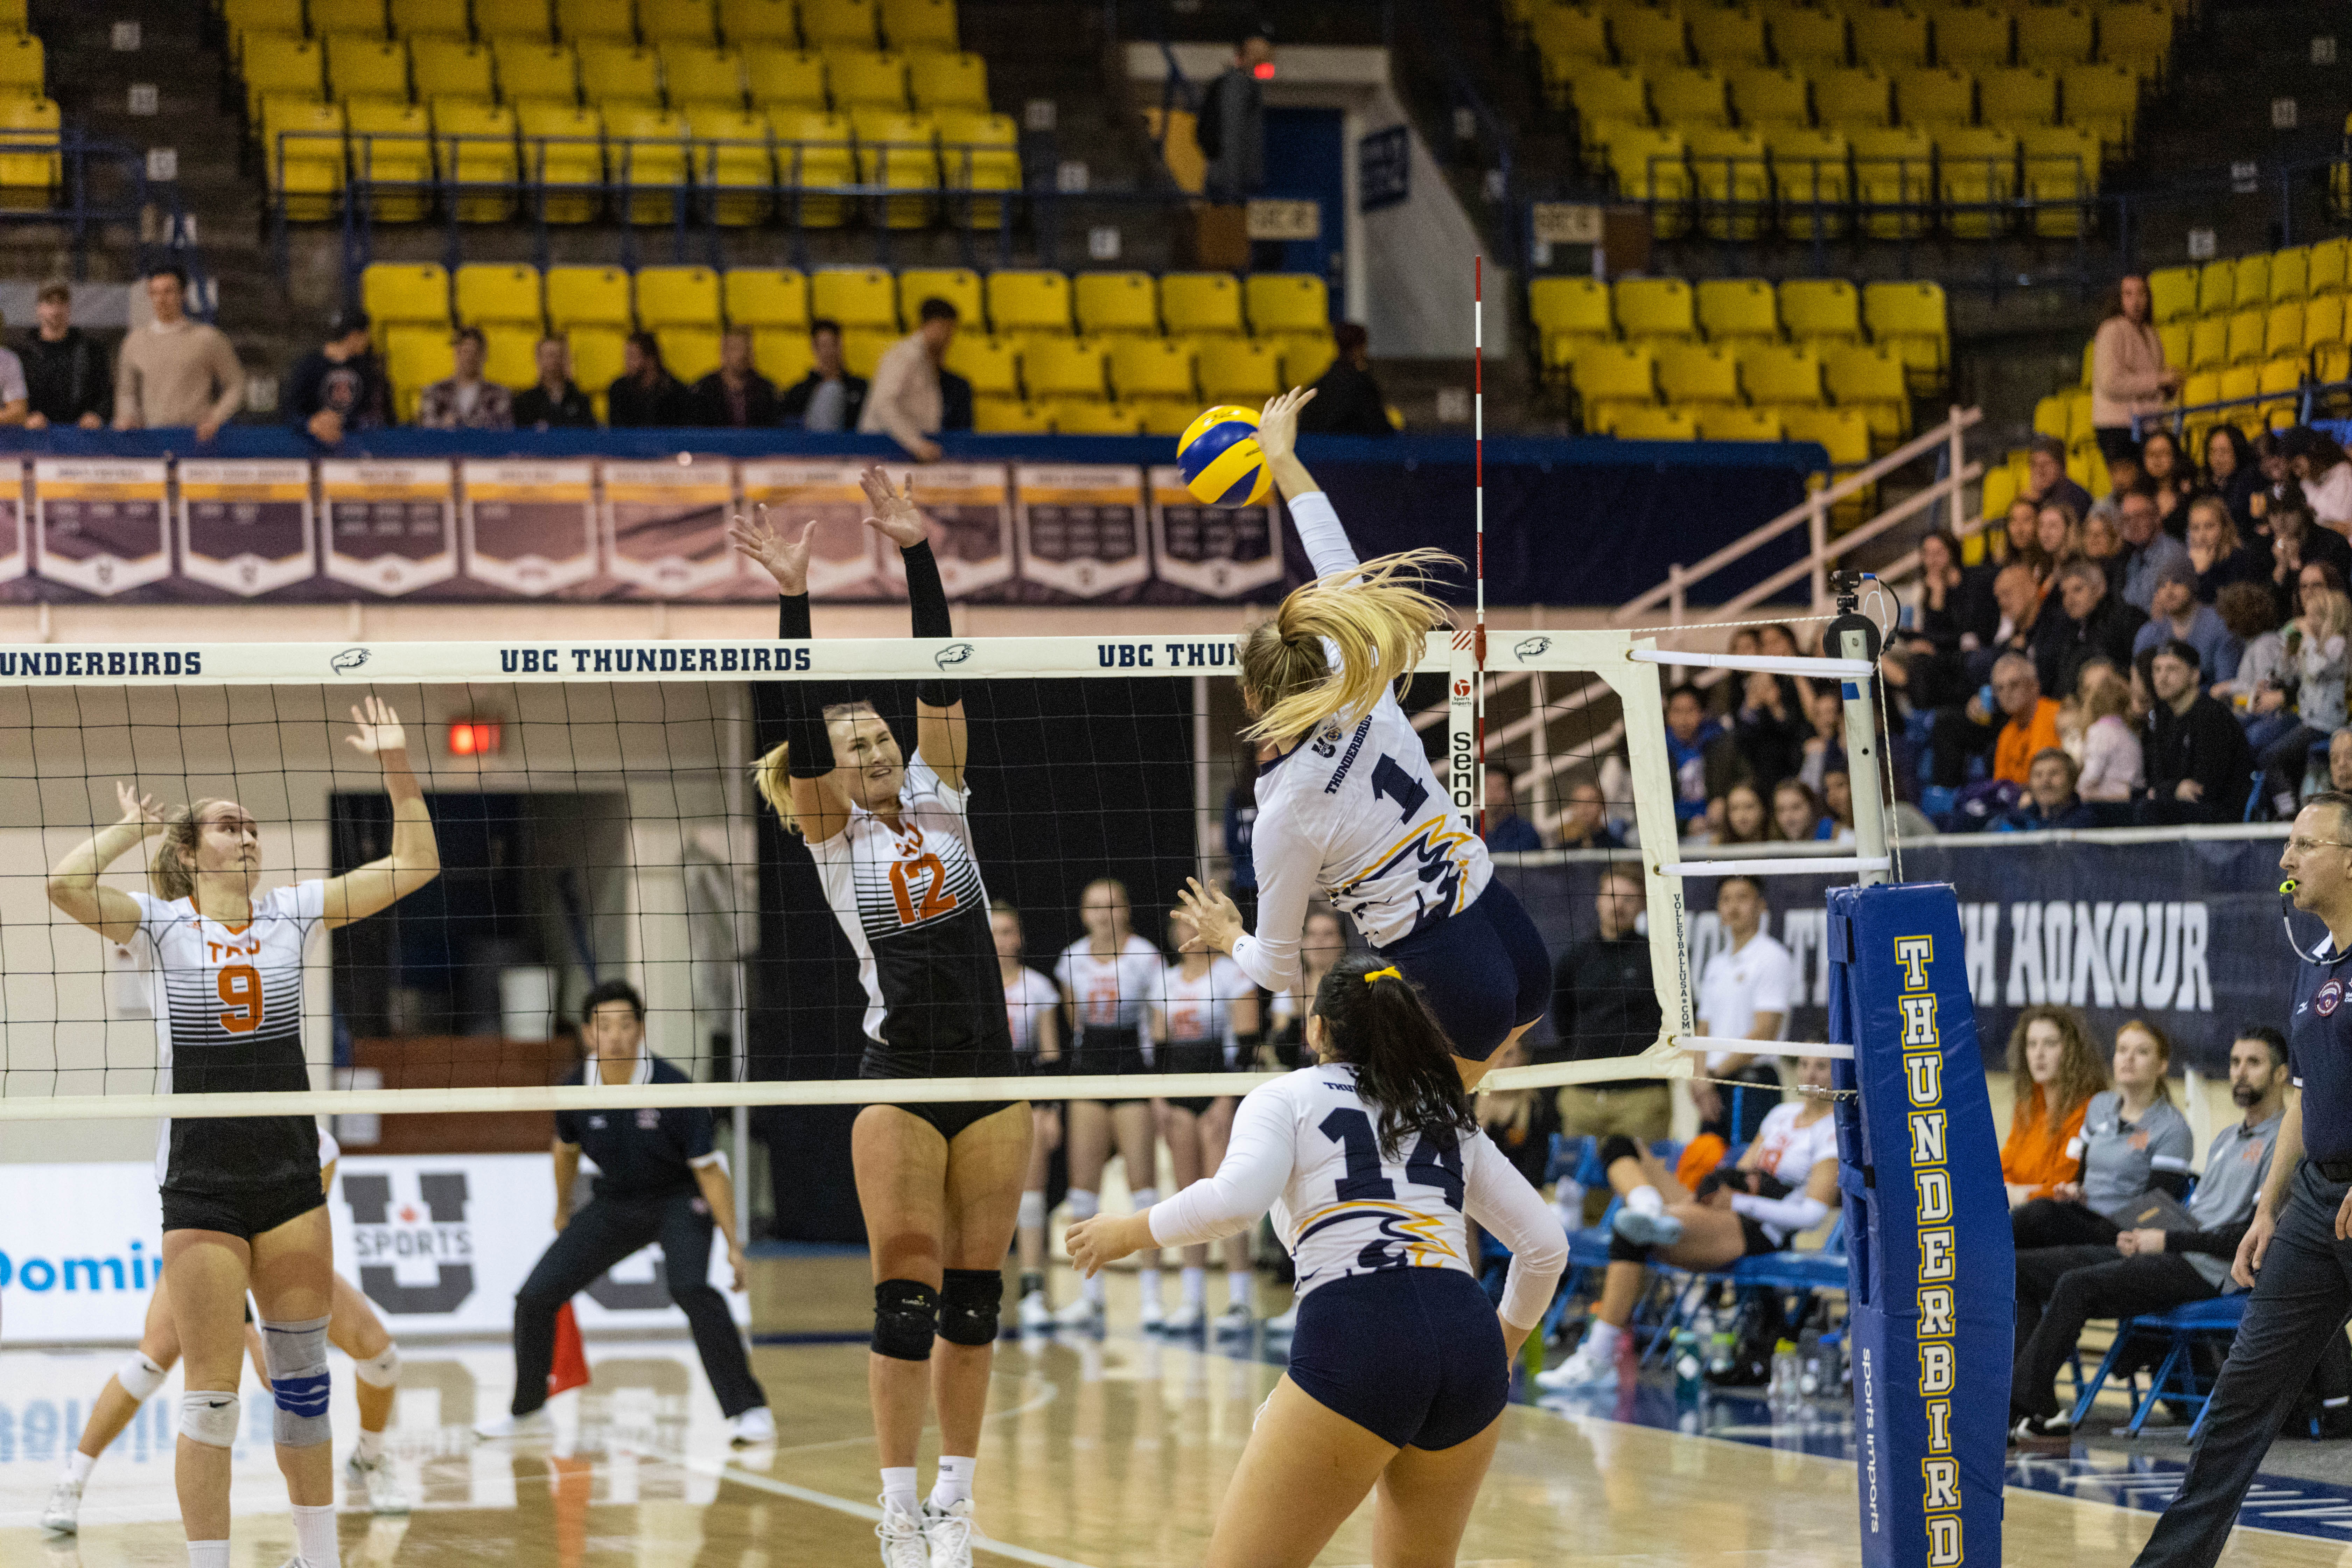 Next term's schedule will be the ultimate test for the Thunderbirds women's volleyball team.